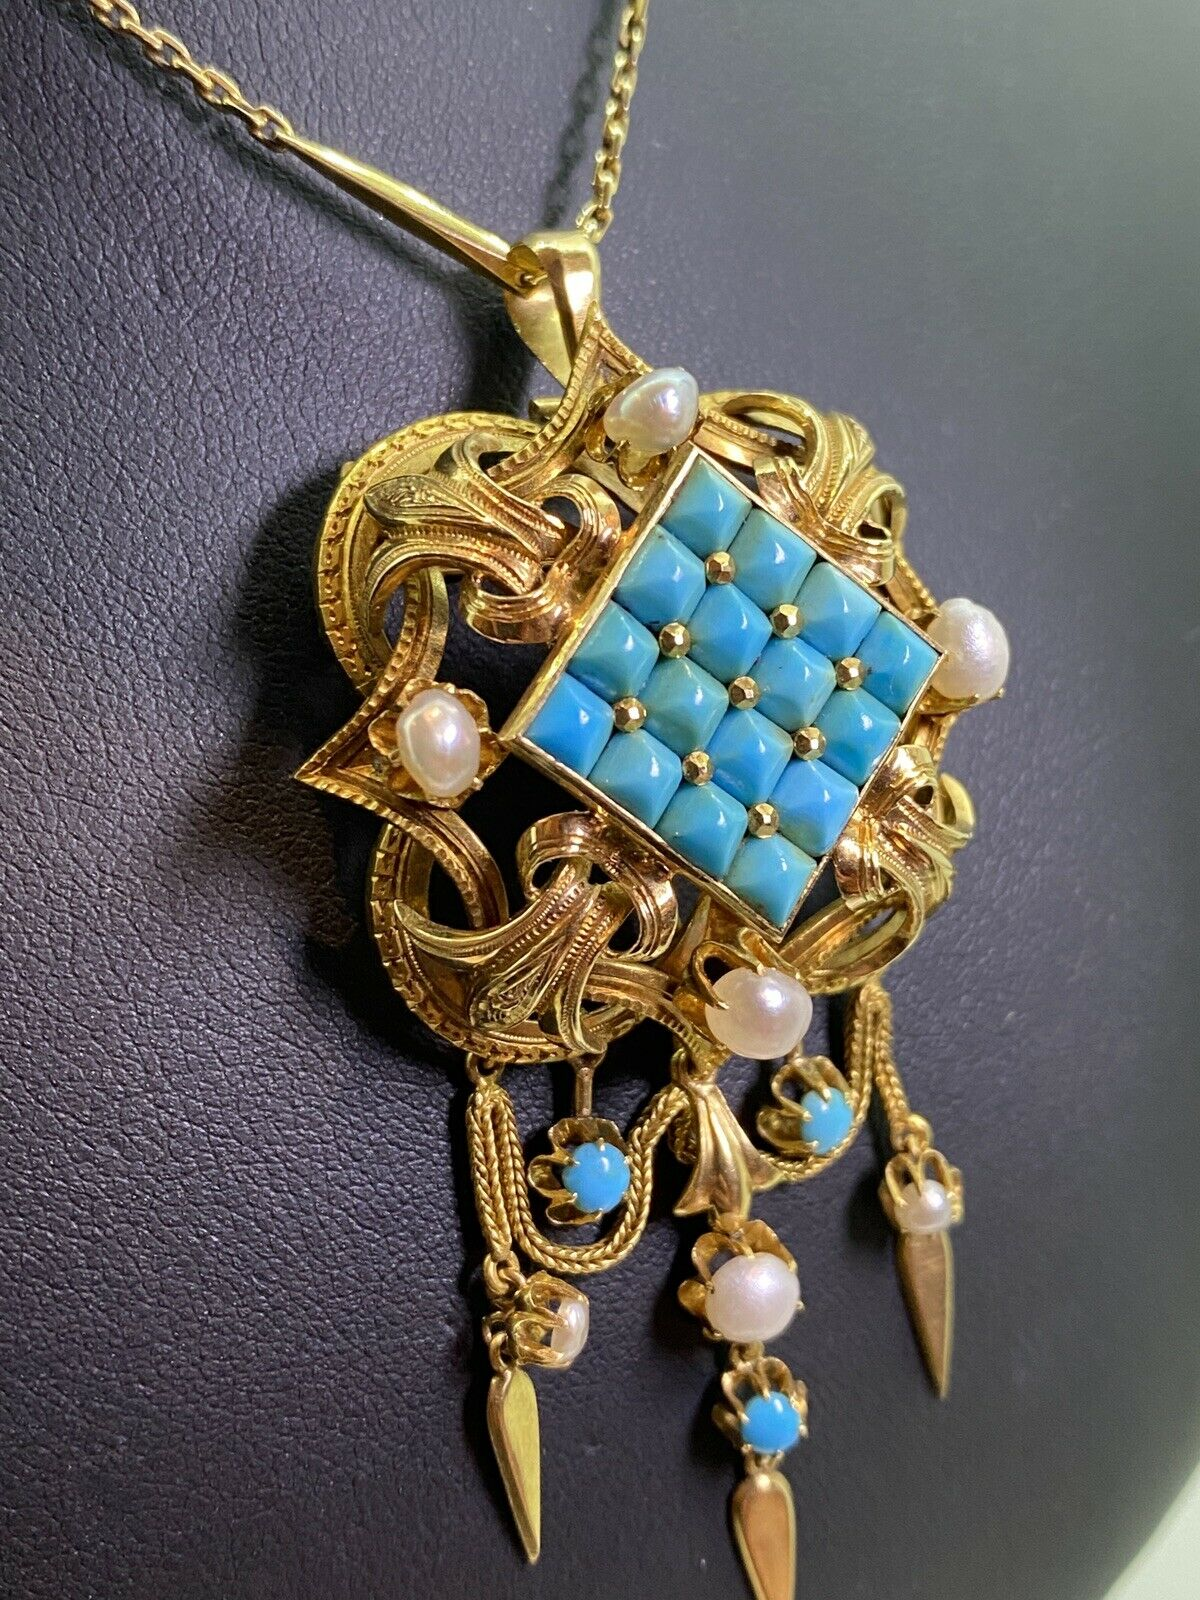 ANTIQUE & ART-DECO JEWELLERY